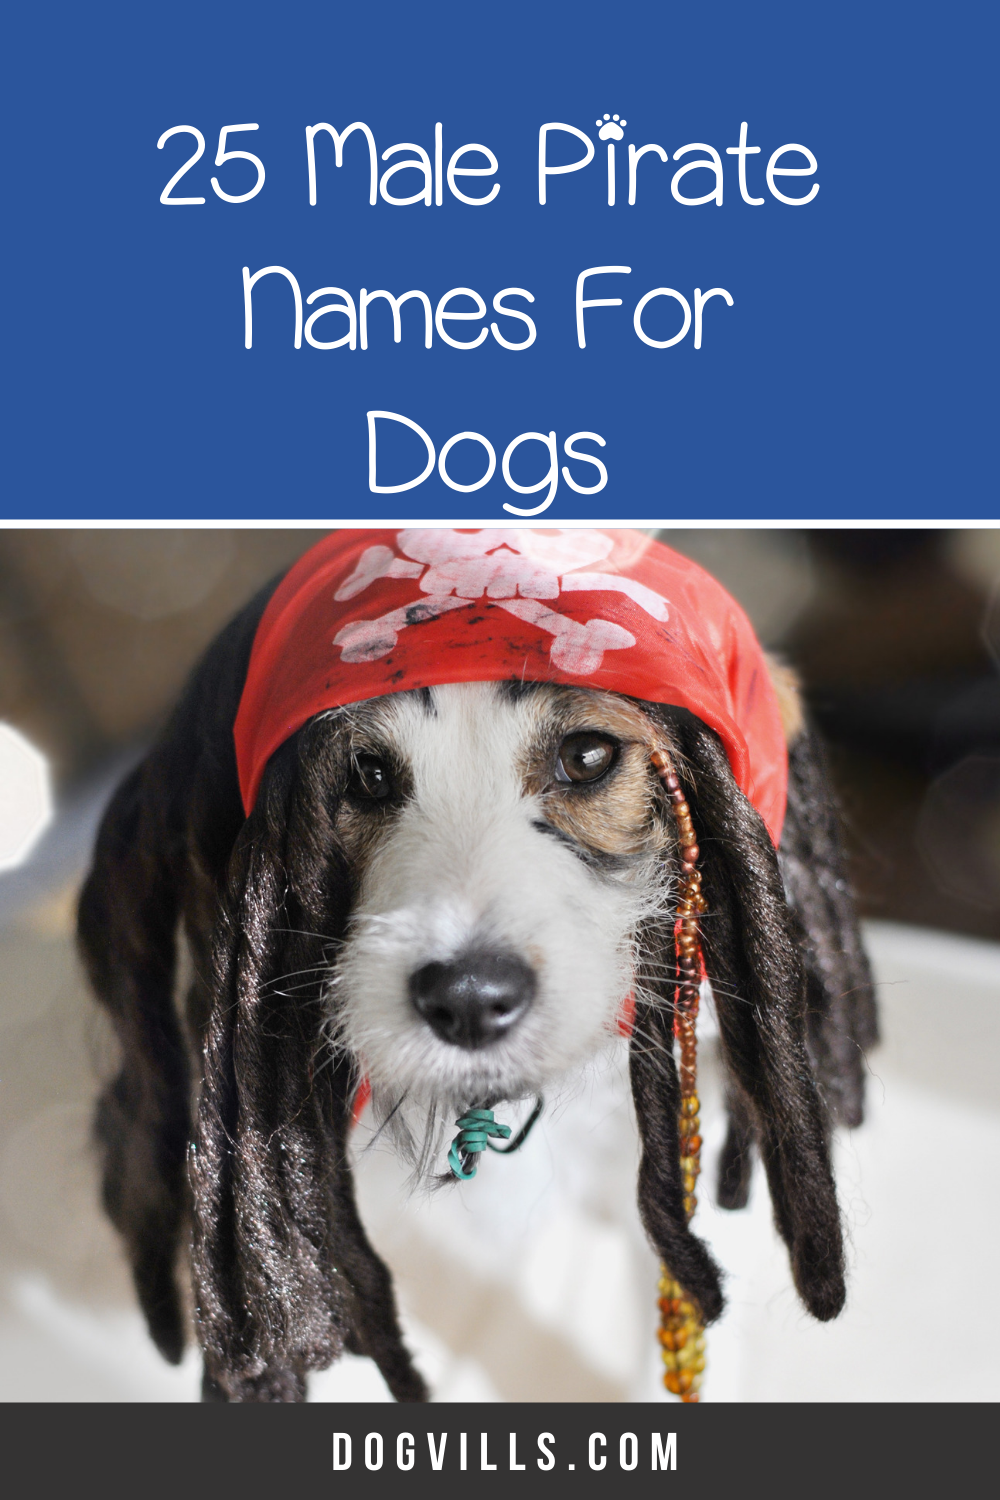 50 Perfect Pirate Dog Names Dogvills In 2020 Dog Names Best